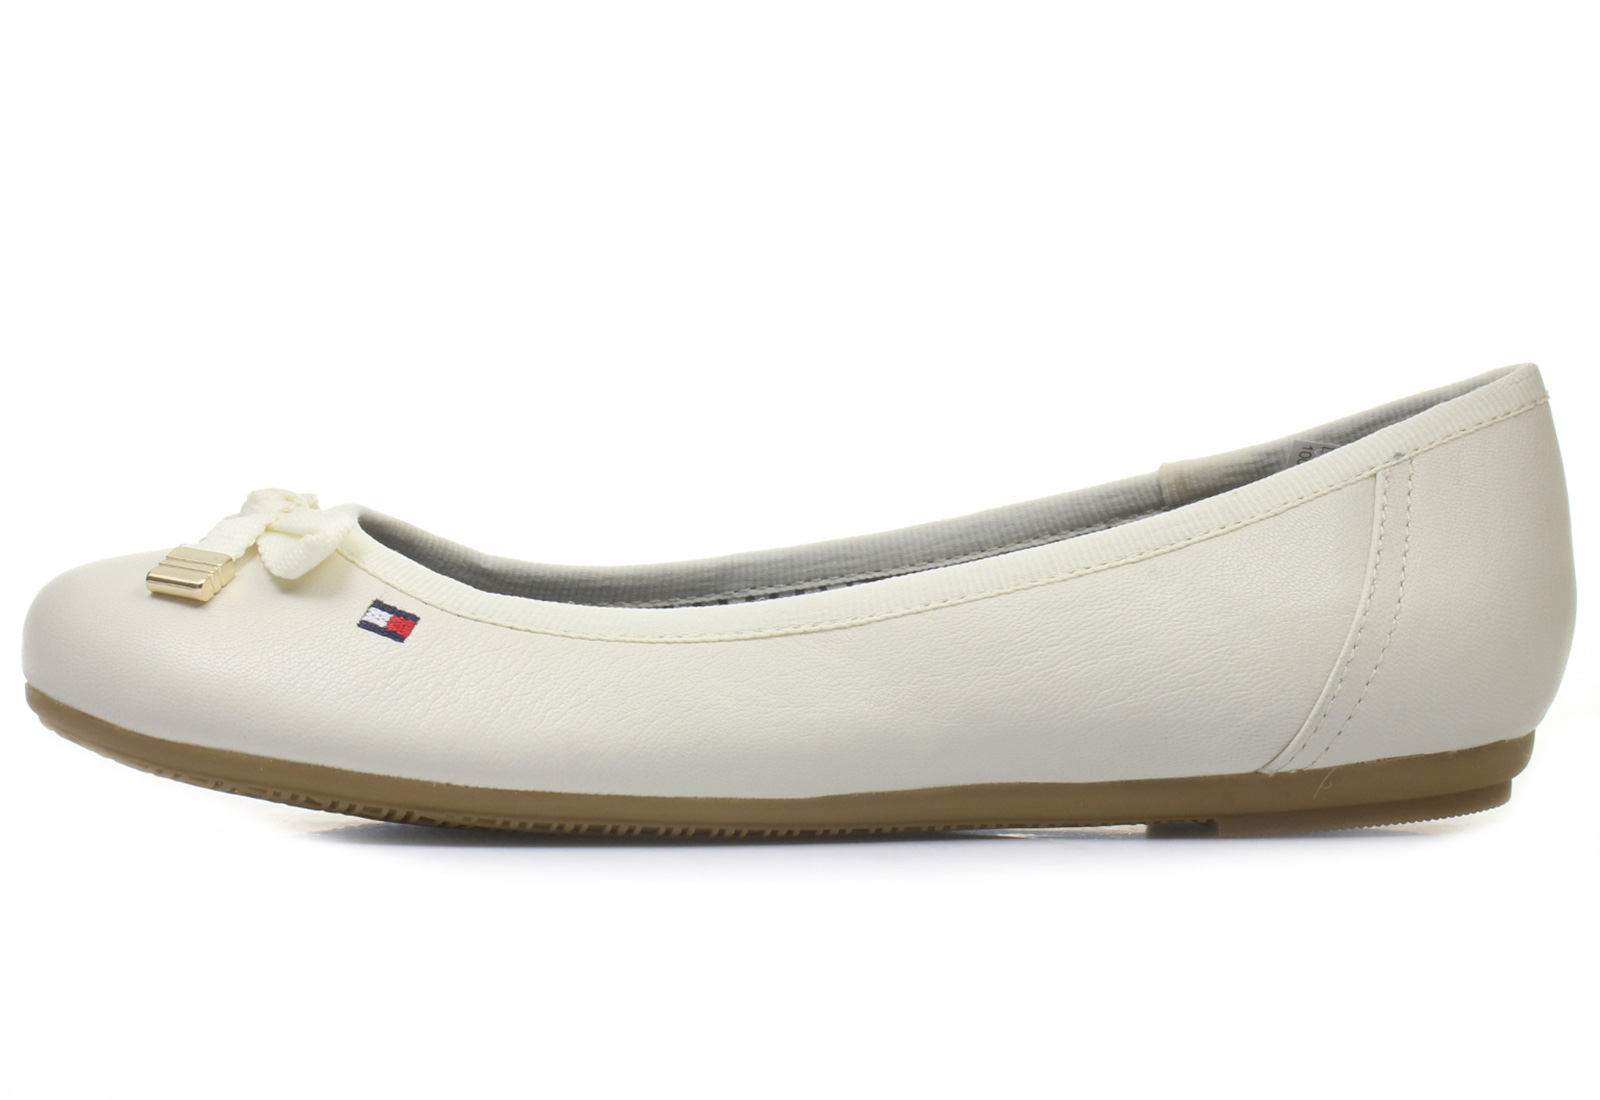 7129be89be Tommy Hilfiger Balerina - Camilla 35a - 14S-6827-121 - Office Shoes ...